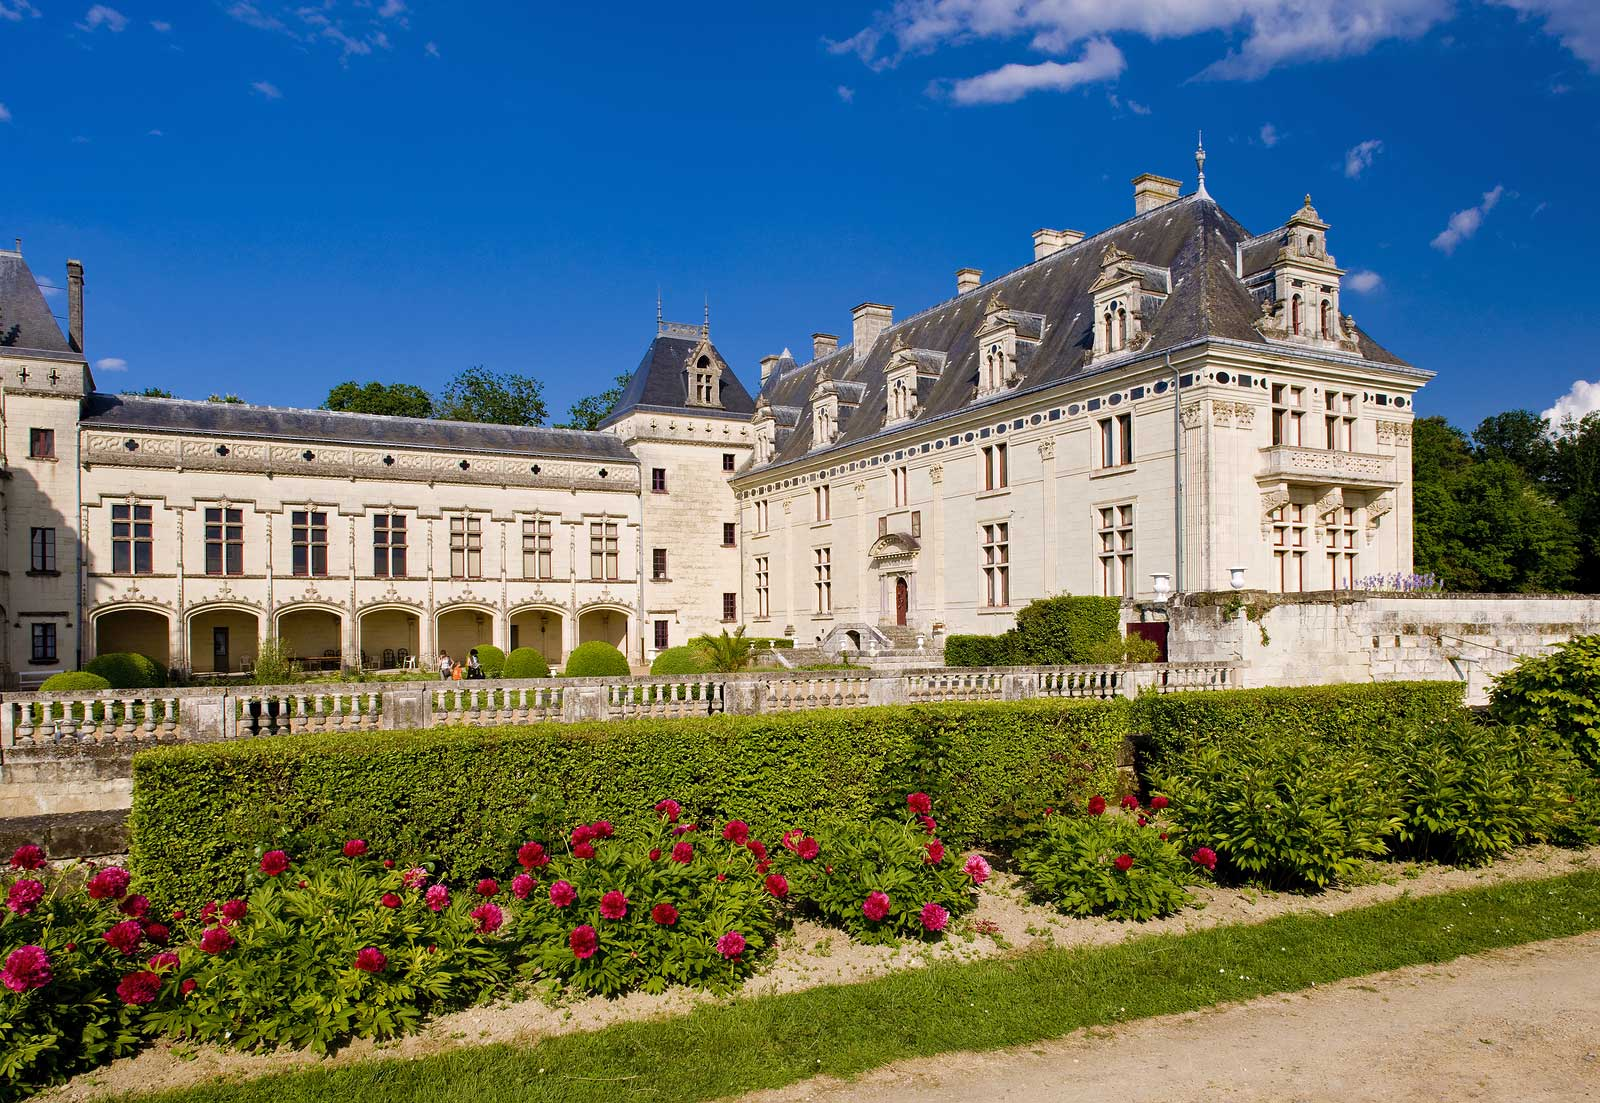 The historic Château de Brézé estate in Saumur, France.